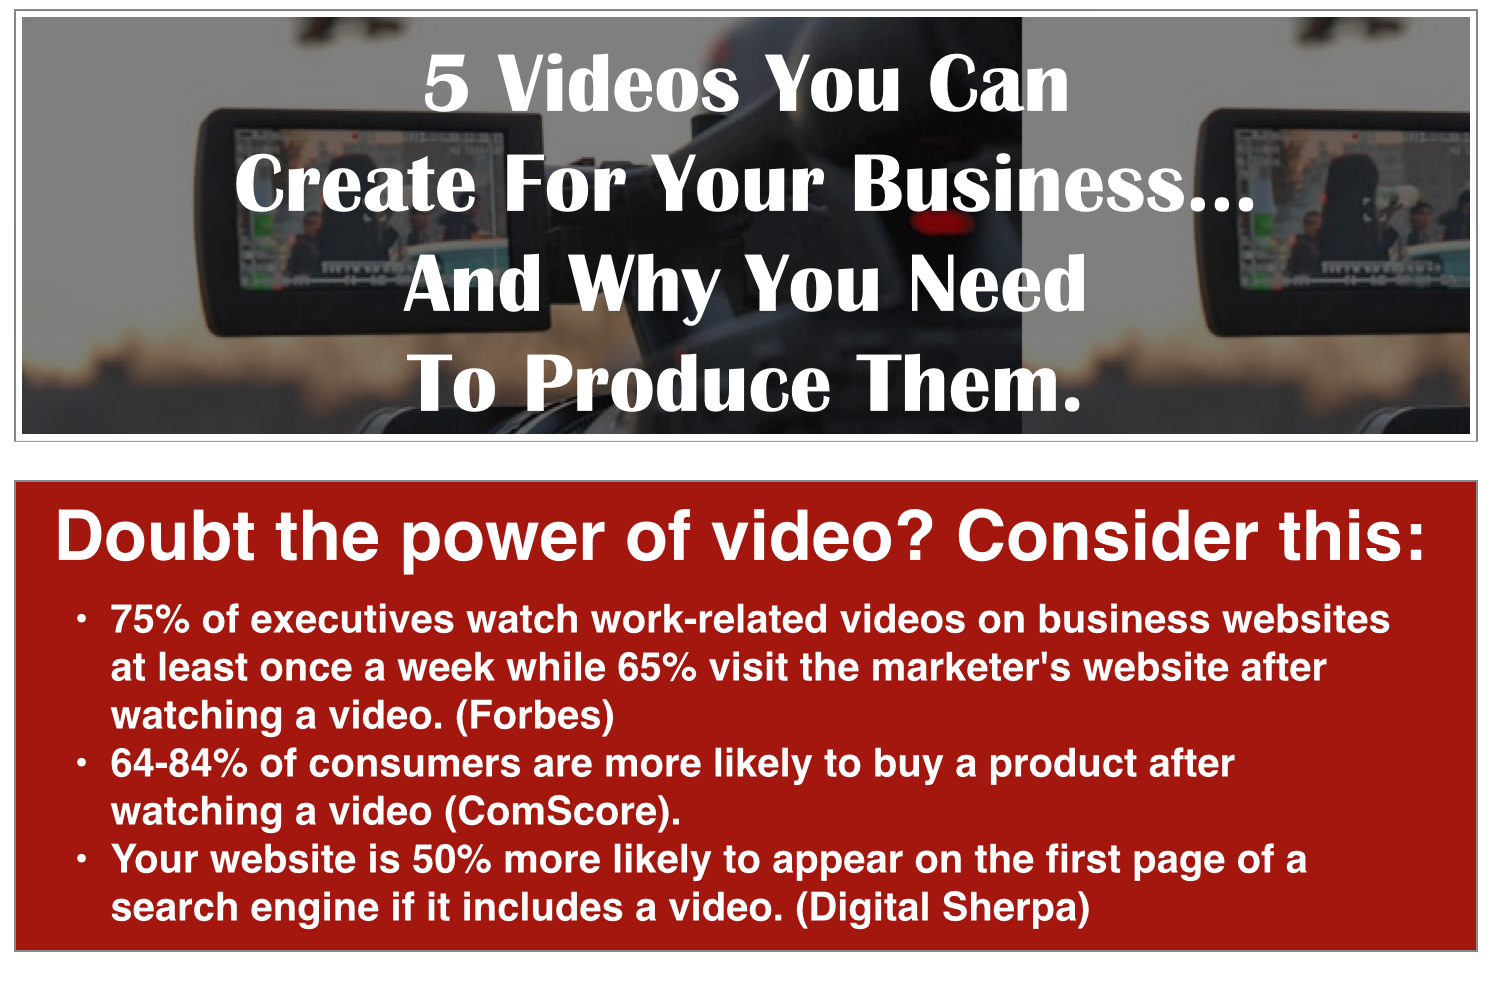 videos for business, google hangouts for business, how to produce videos for your business